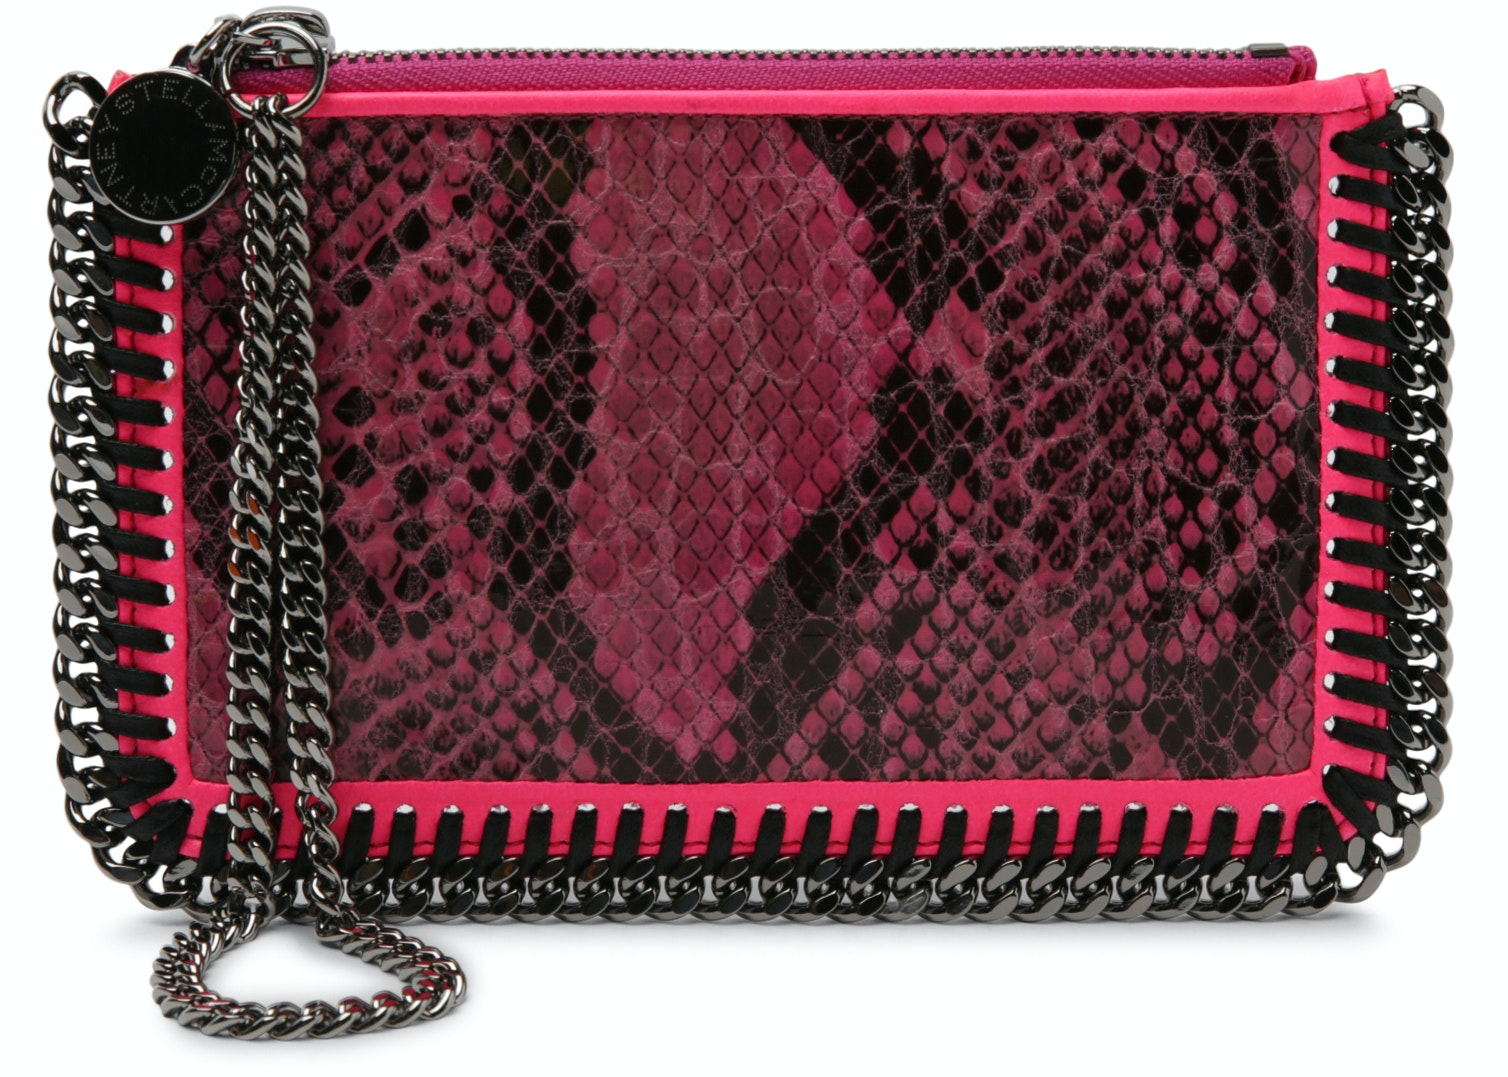 Stella McCartney Falabella Clutch Faux Python Mini Pink